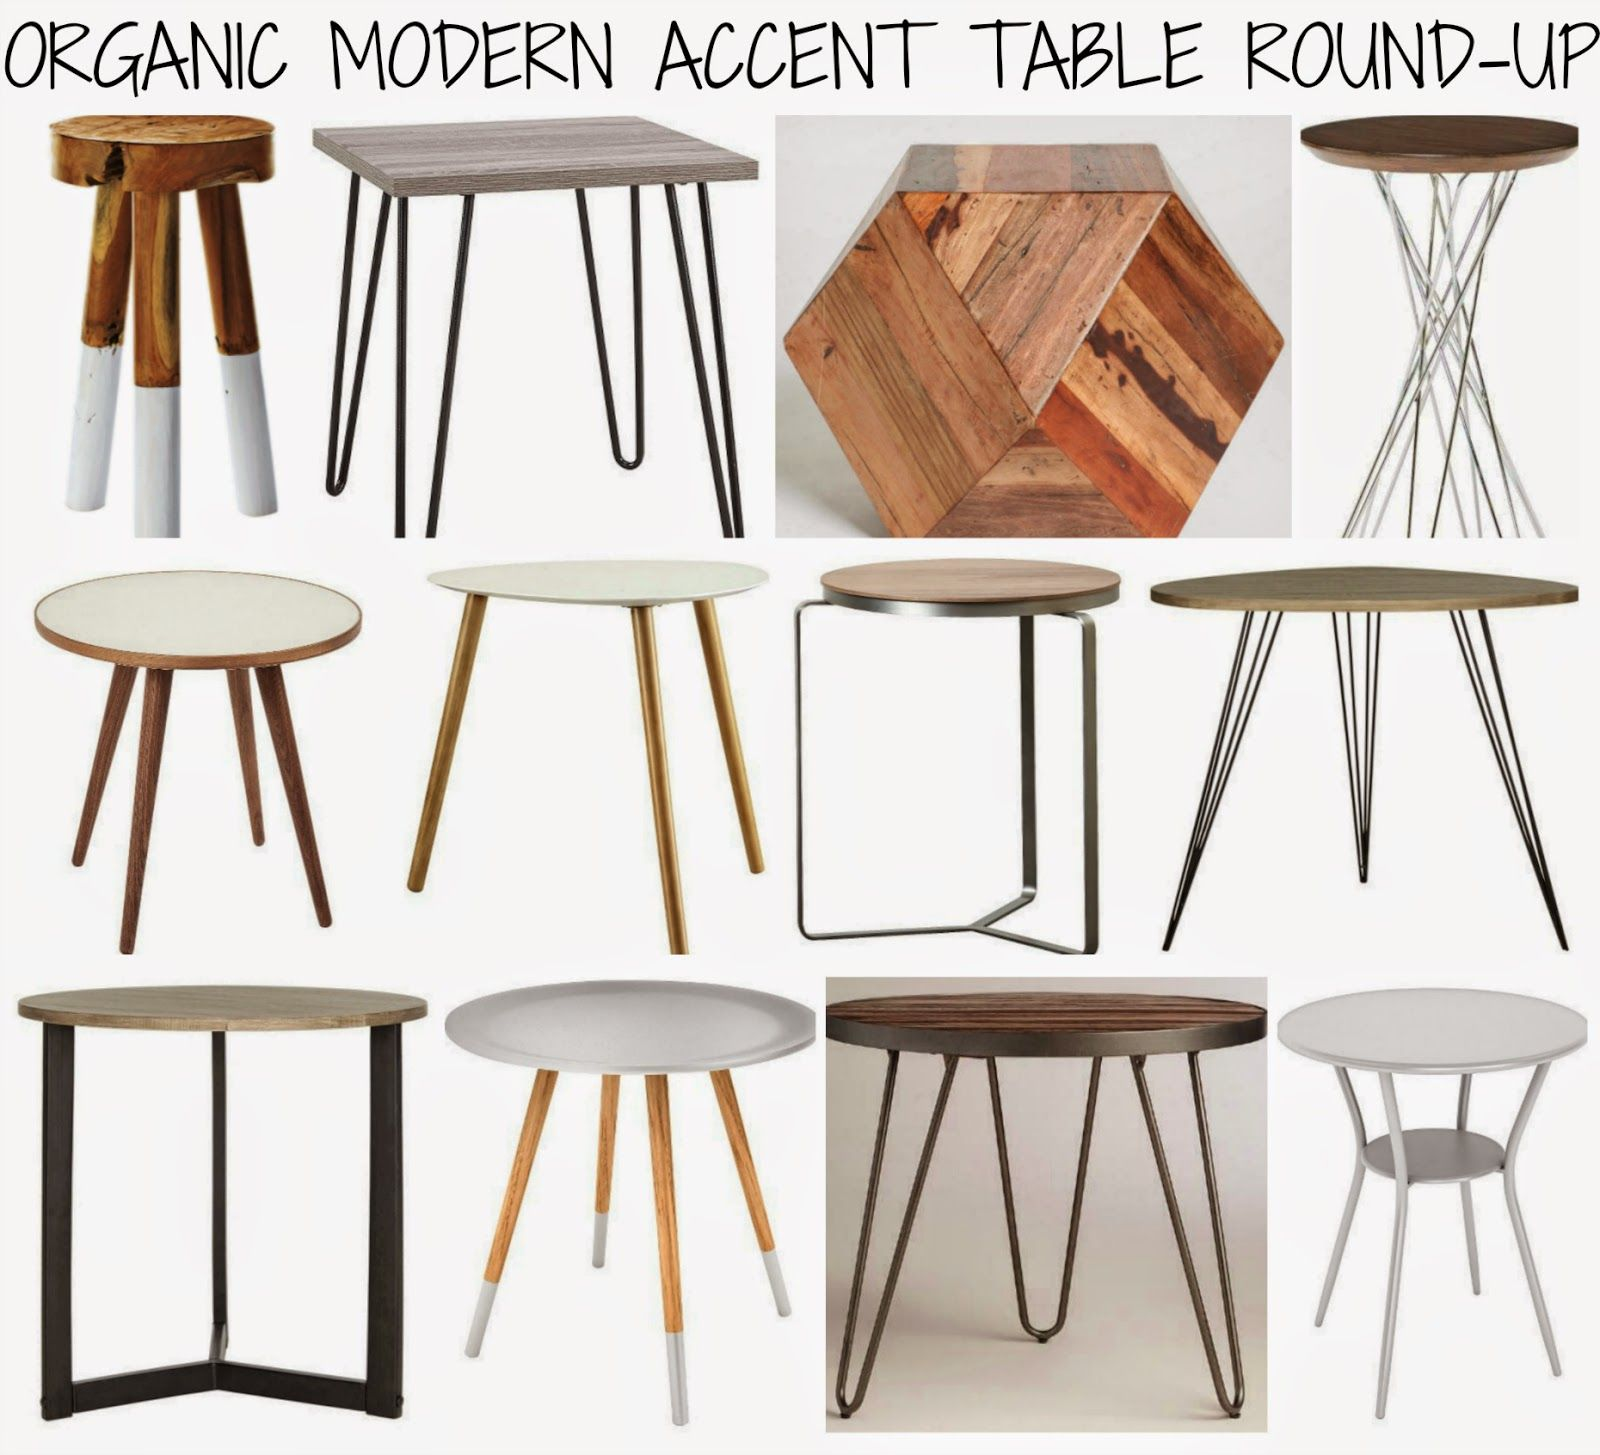 modern accent tables. AFFORDABLE ACCENT TABLE ROUND-UP: MID CENTURY MEETS ORGANIC MODERN Modern Accent Tables